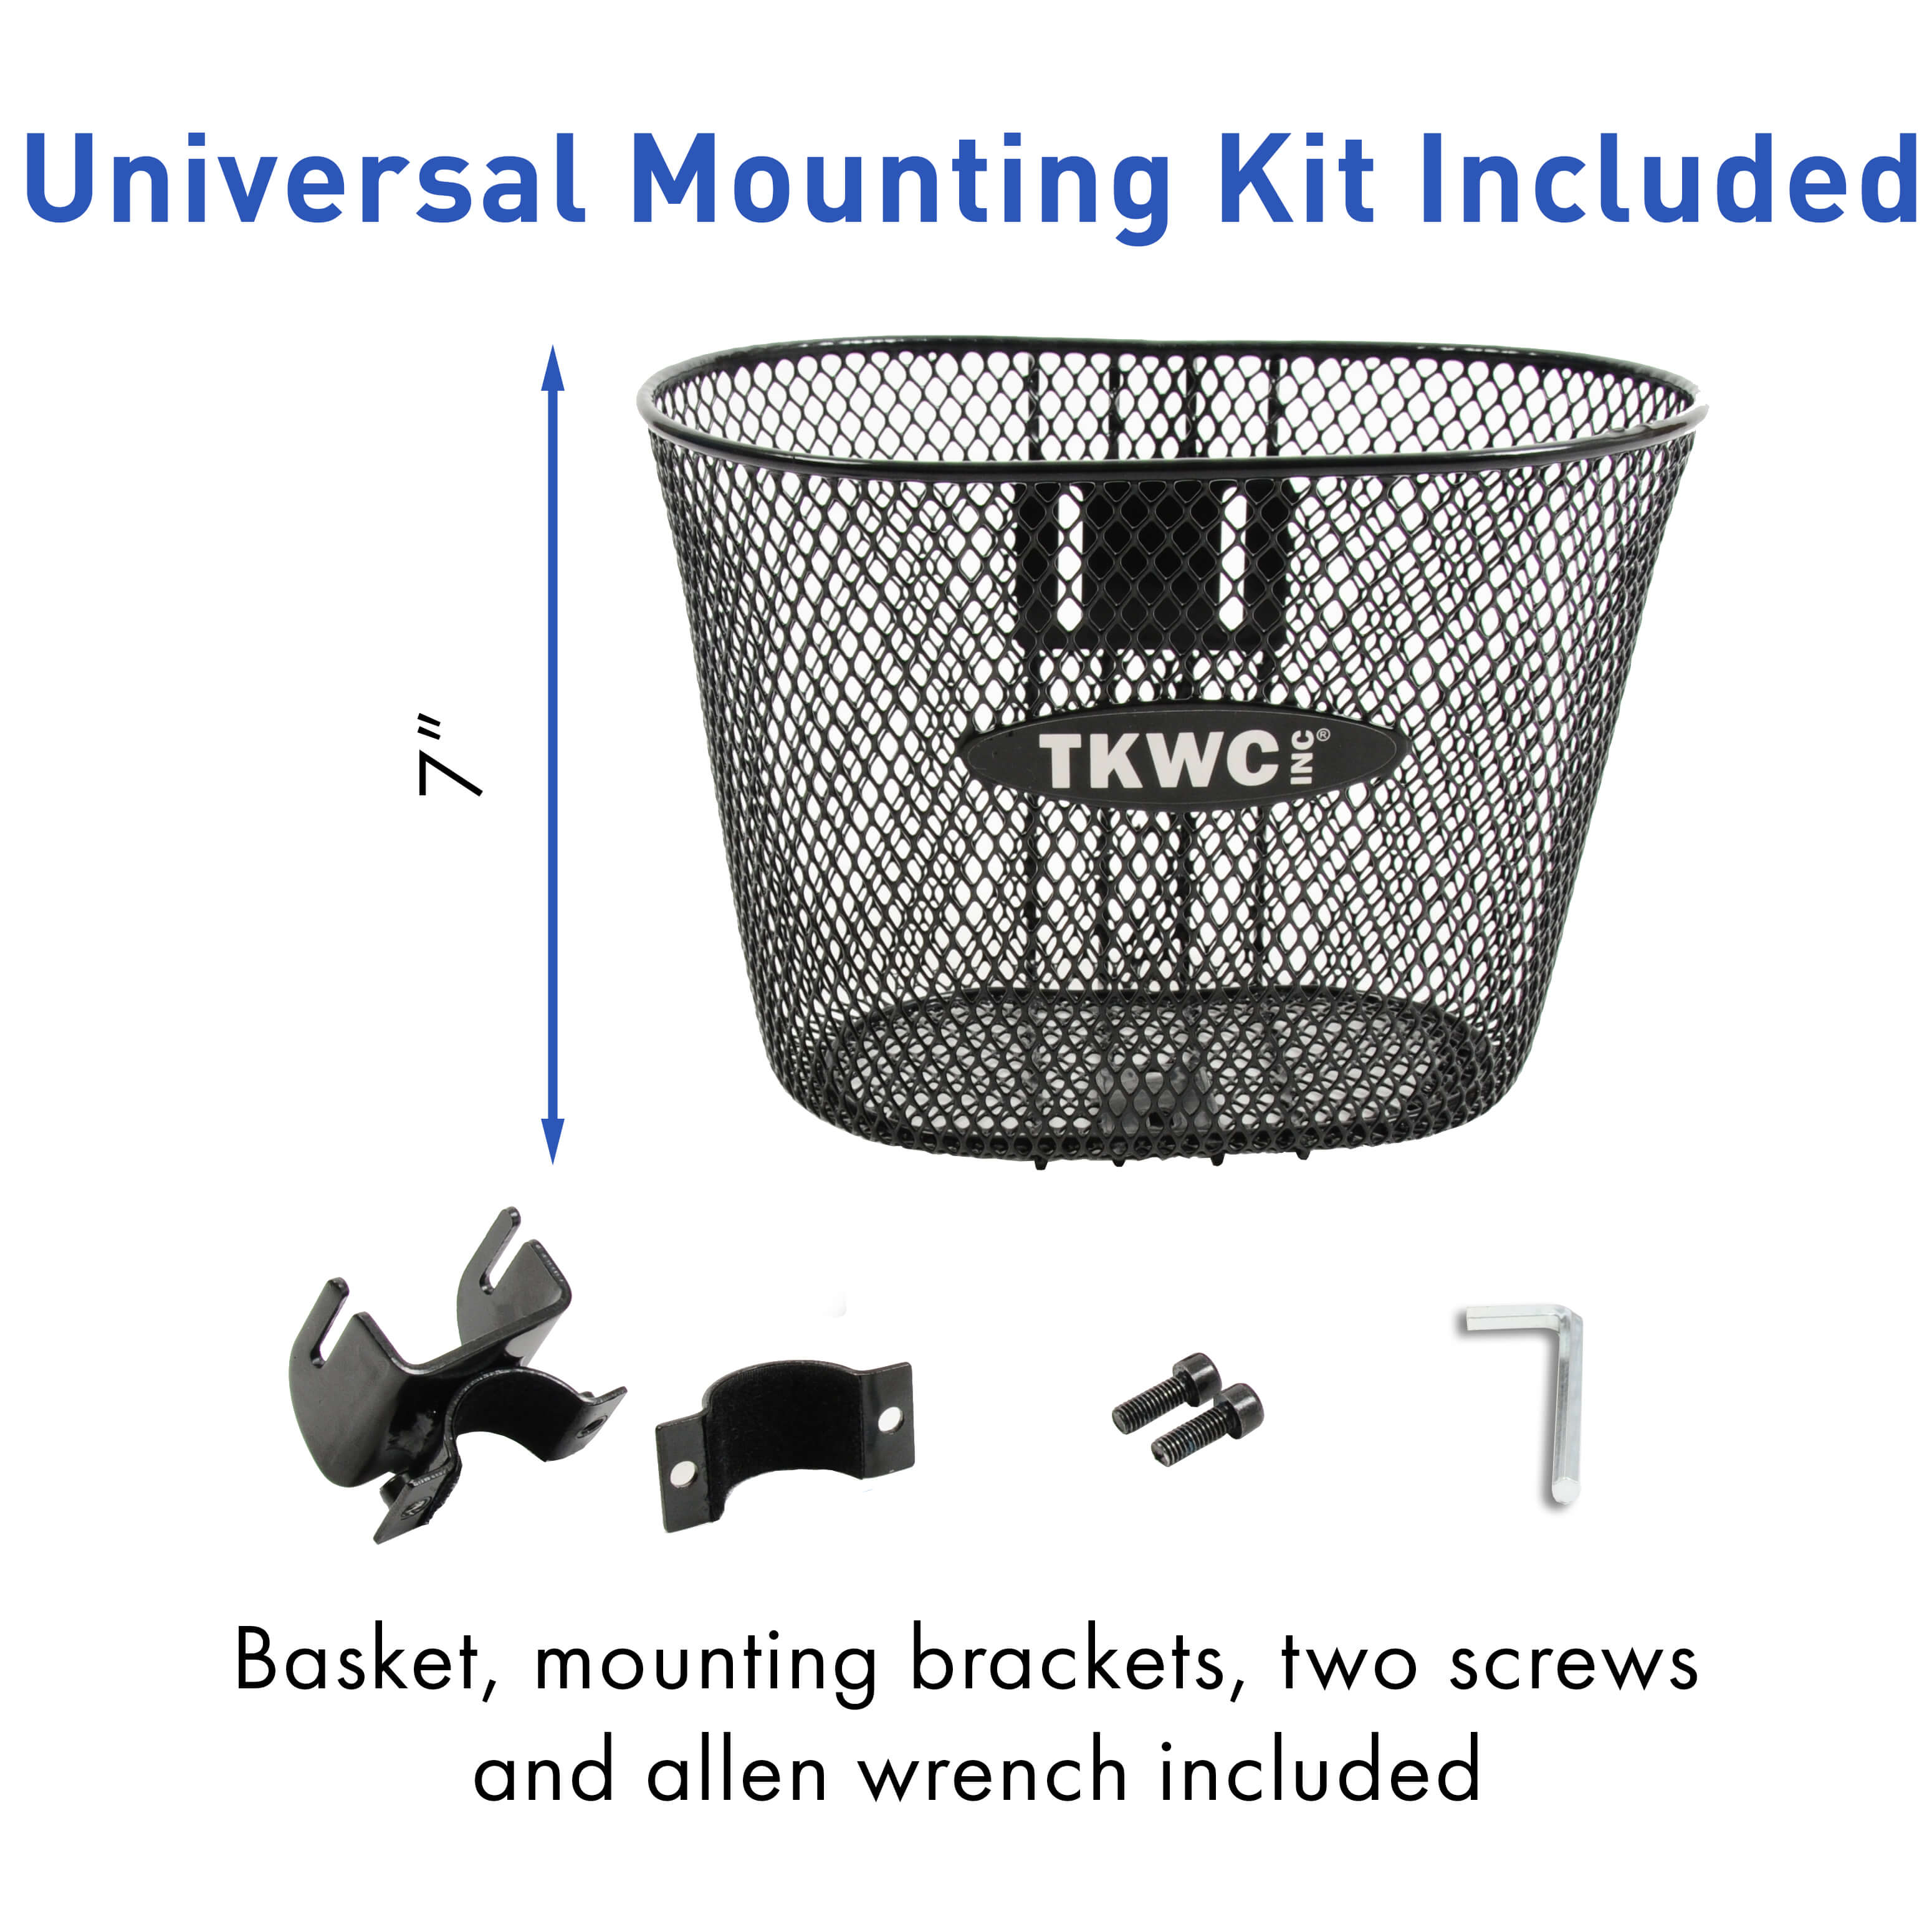 universal mounting kit included